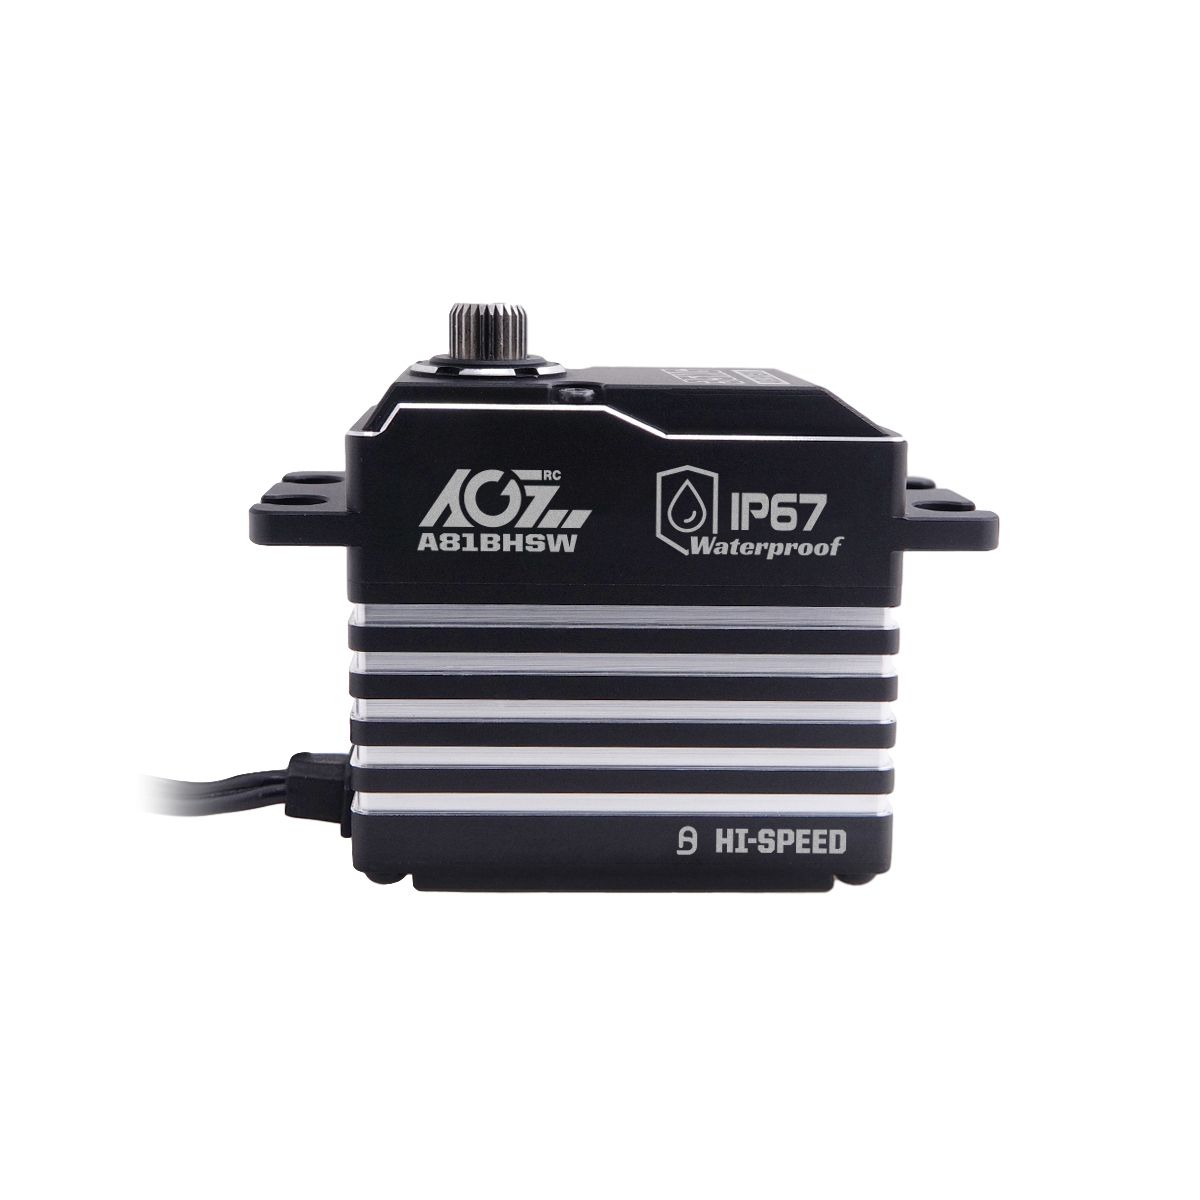 AGFrc A81BHSW High Voltage 25T Spline Ultra Torque CNC Machining Digital Fully Waterproof Brushless WP Servo 31KG 0.086Sec Traxxass Crawler